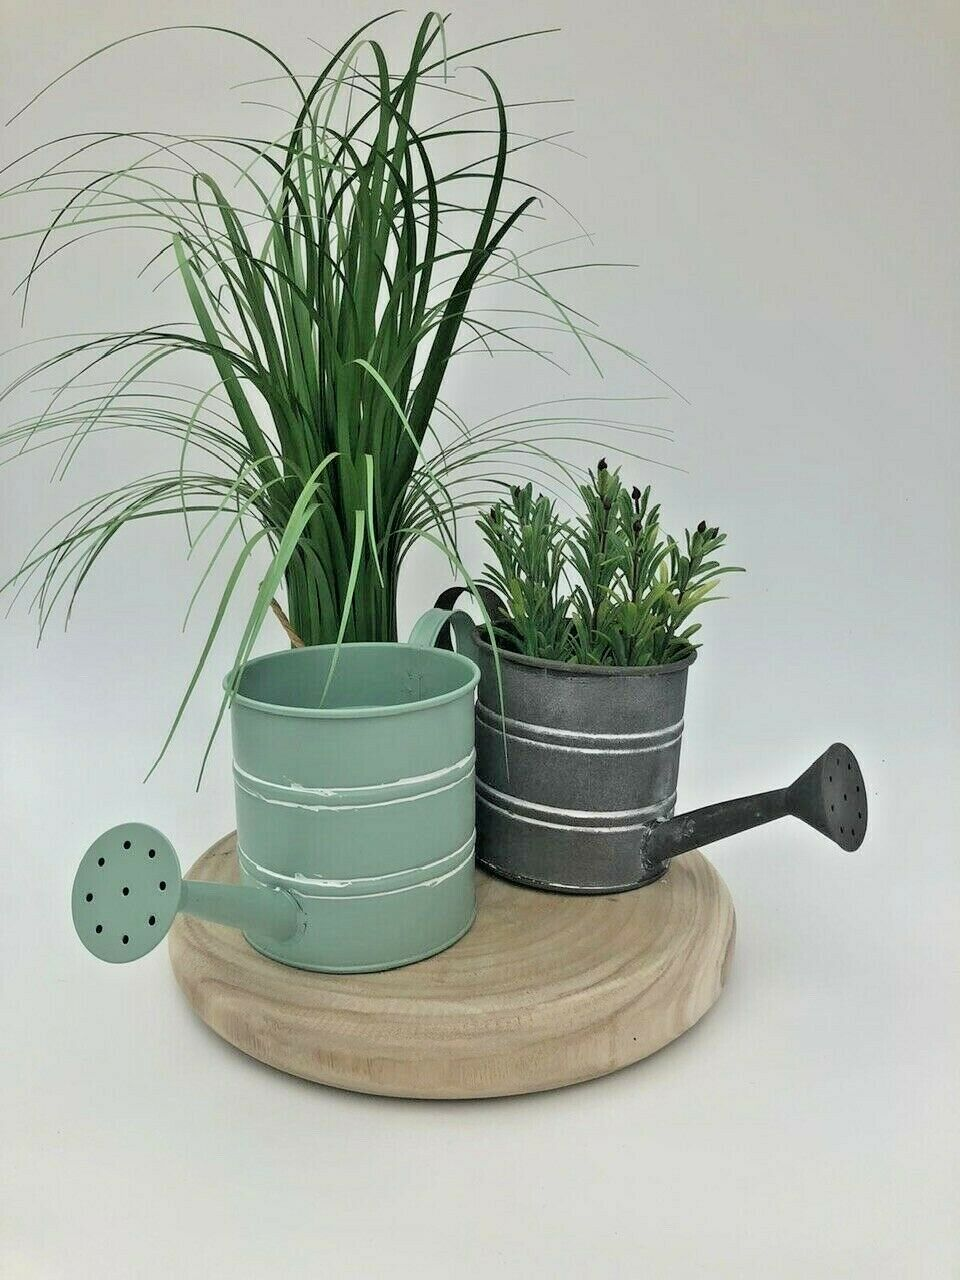 Small Decorative Metal Watering Can Garden Planter Pot Vintage Shabby Style